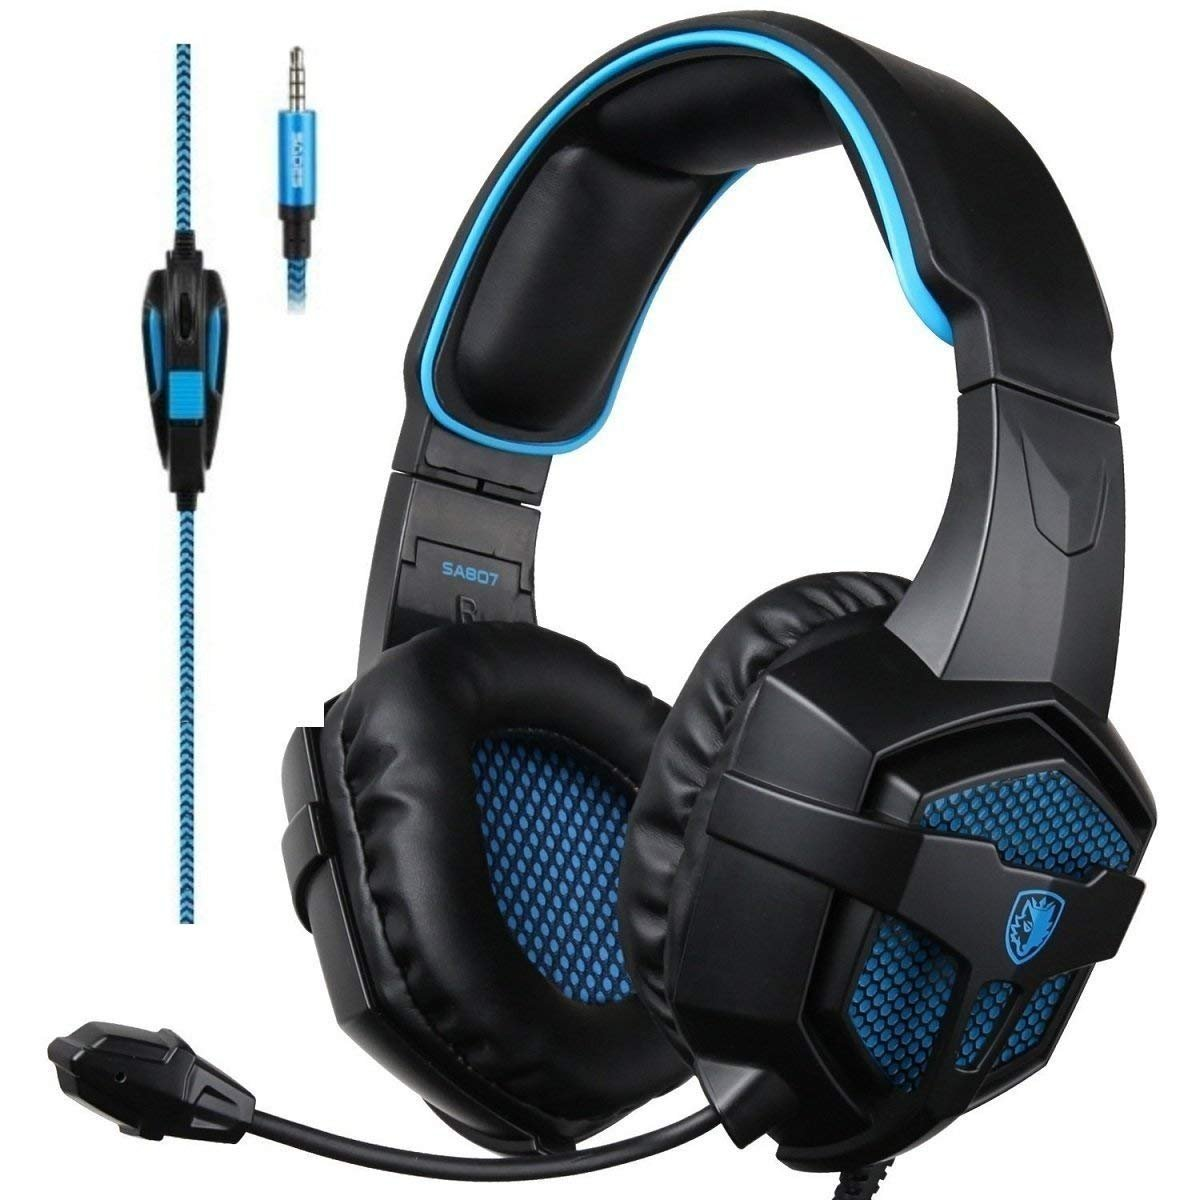 SADES Gaming Headset Headphone Stereo